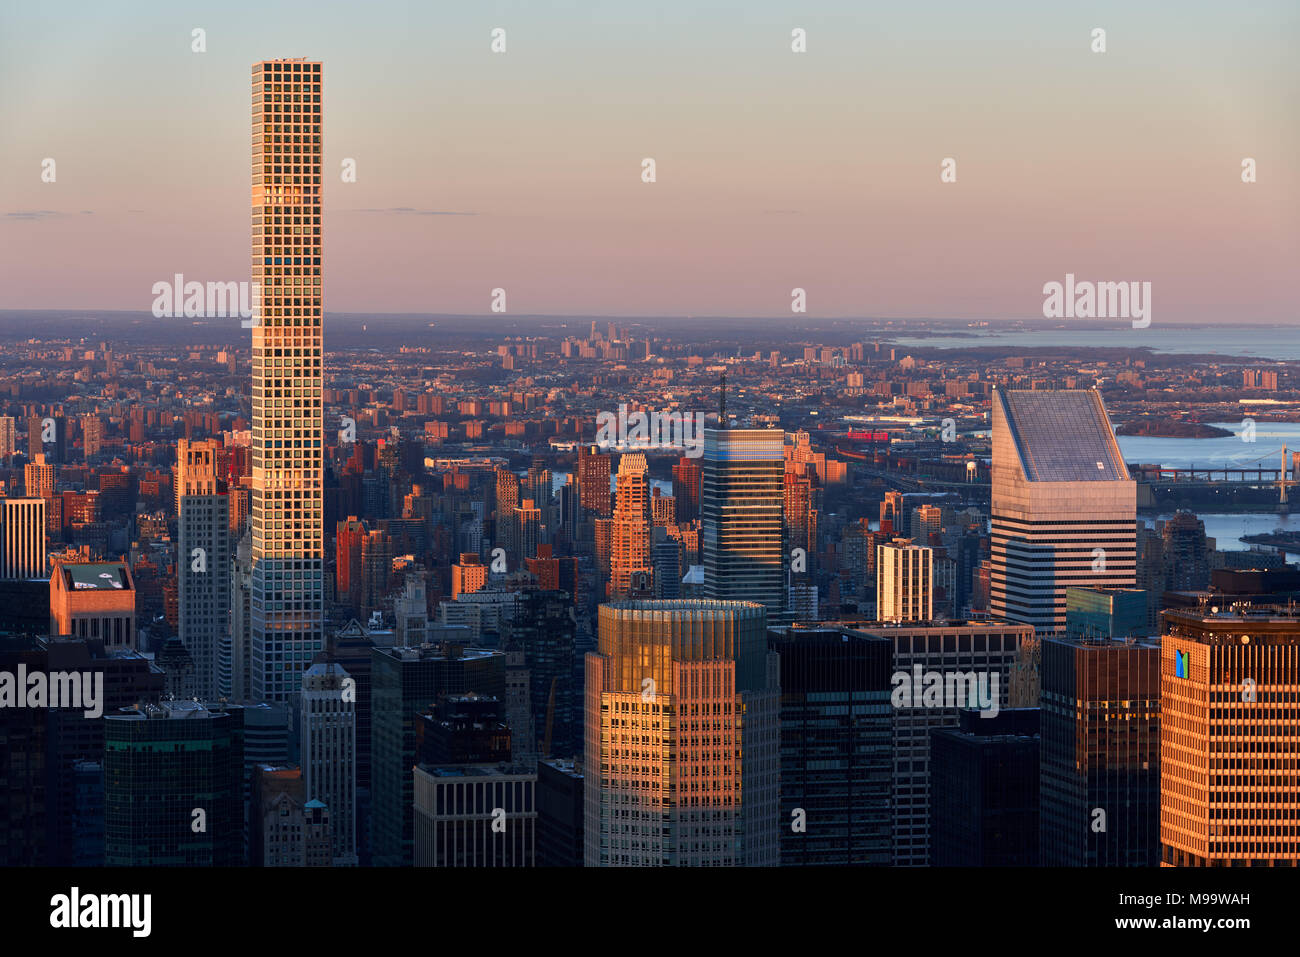 Aerial Sunset view of the skyscrapers of Midtown Manhattan and 432 Park Avenue luxury building (tallest residential building in USA, as of April 2018) - Stock Image